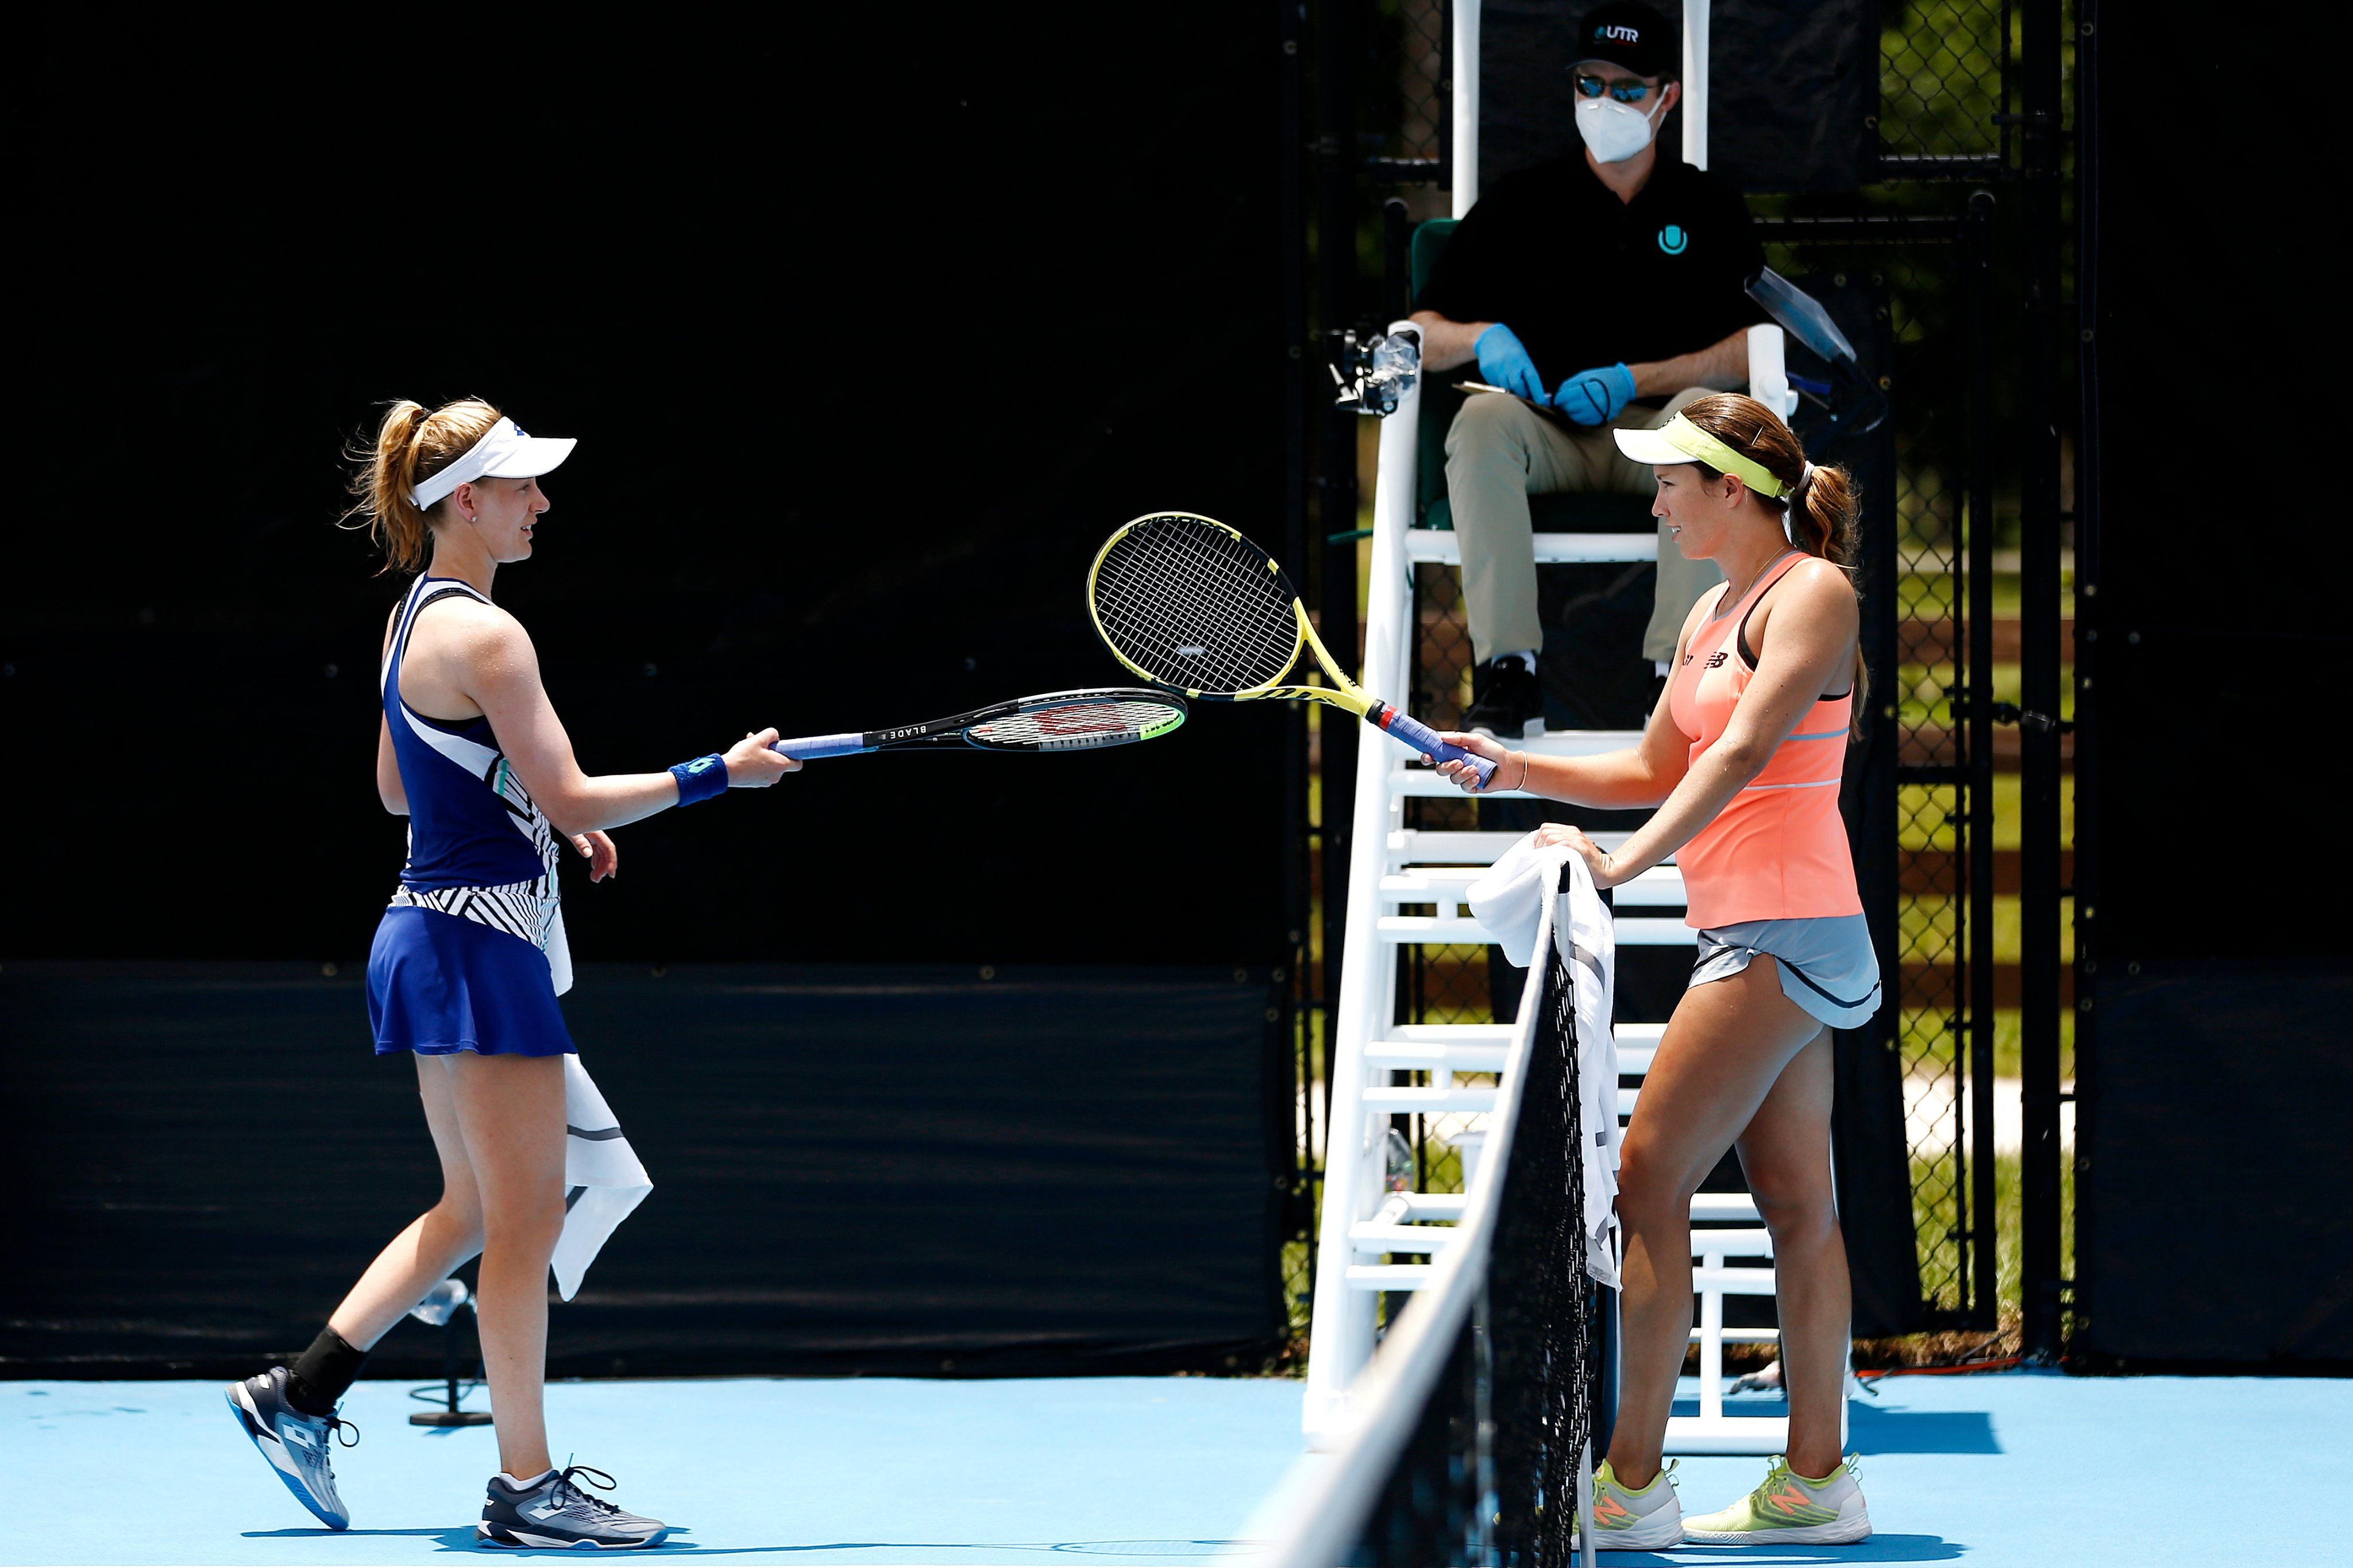 Player shaking hands while maintaining distance at UTR Pro Match Series. (Credits: Twitter/ UTR Pro)